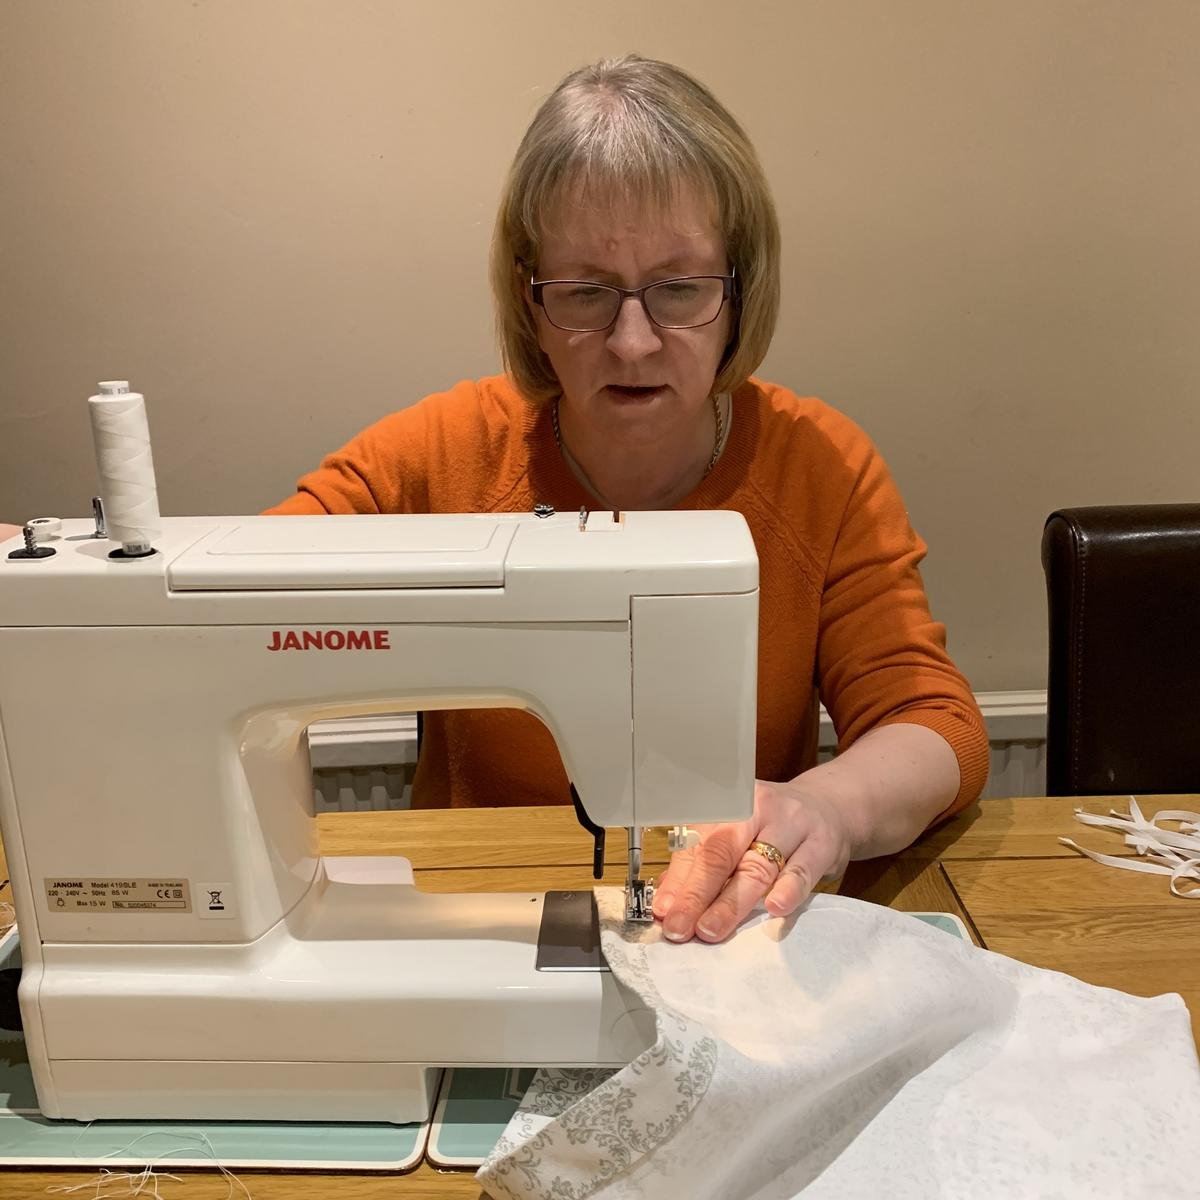 Janet Leeds sewing on sewing machine